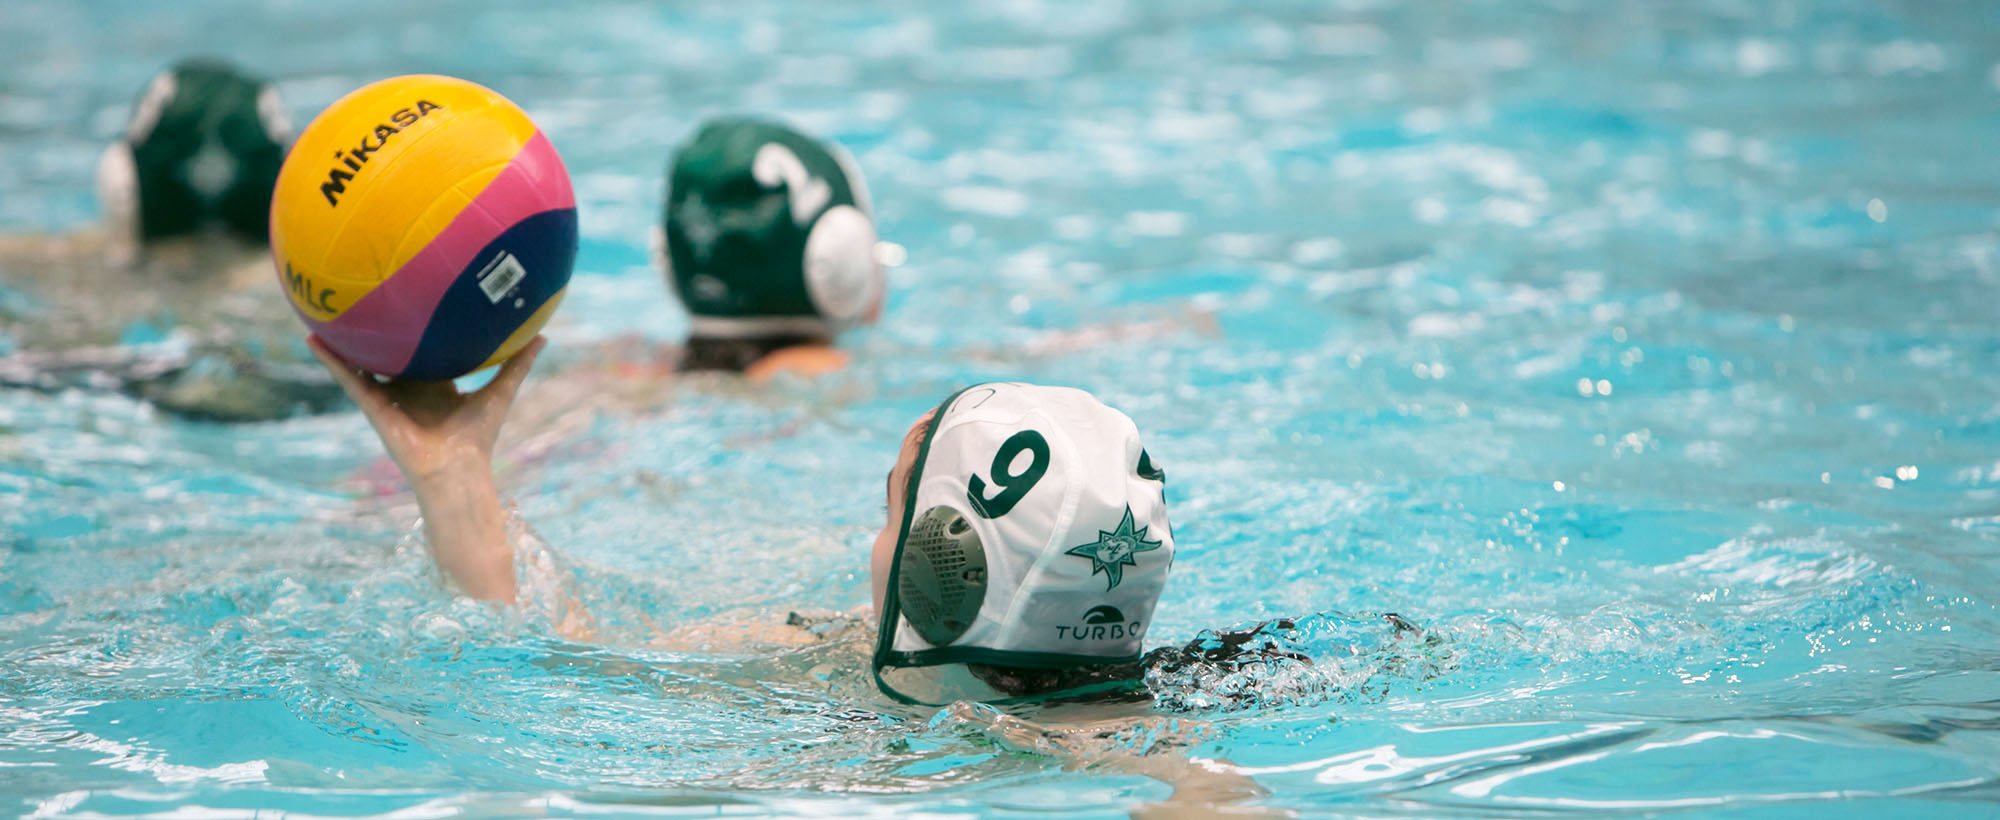 sport-waterpolo.jpg